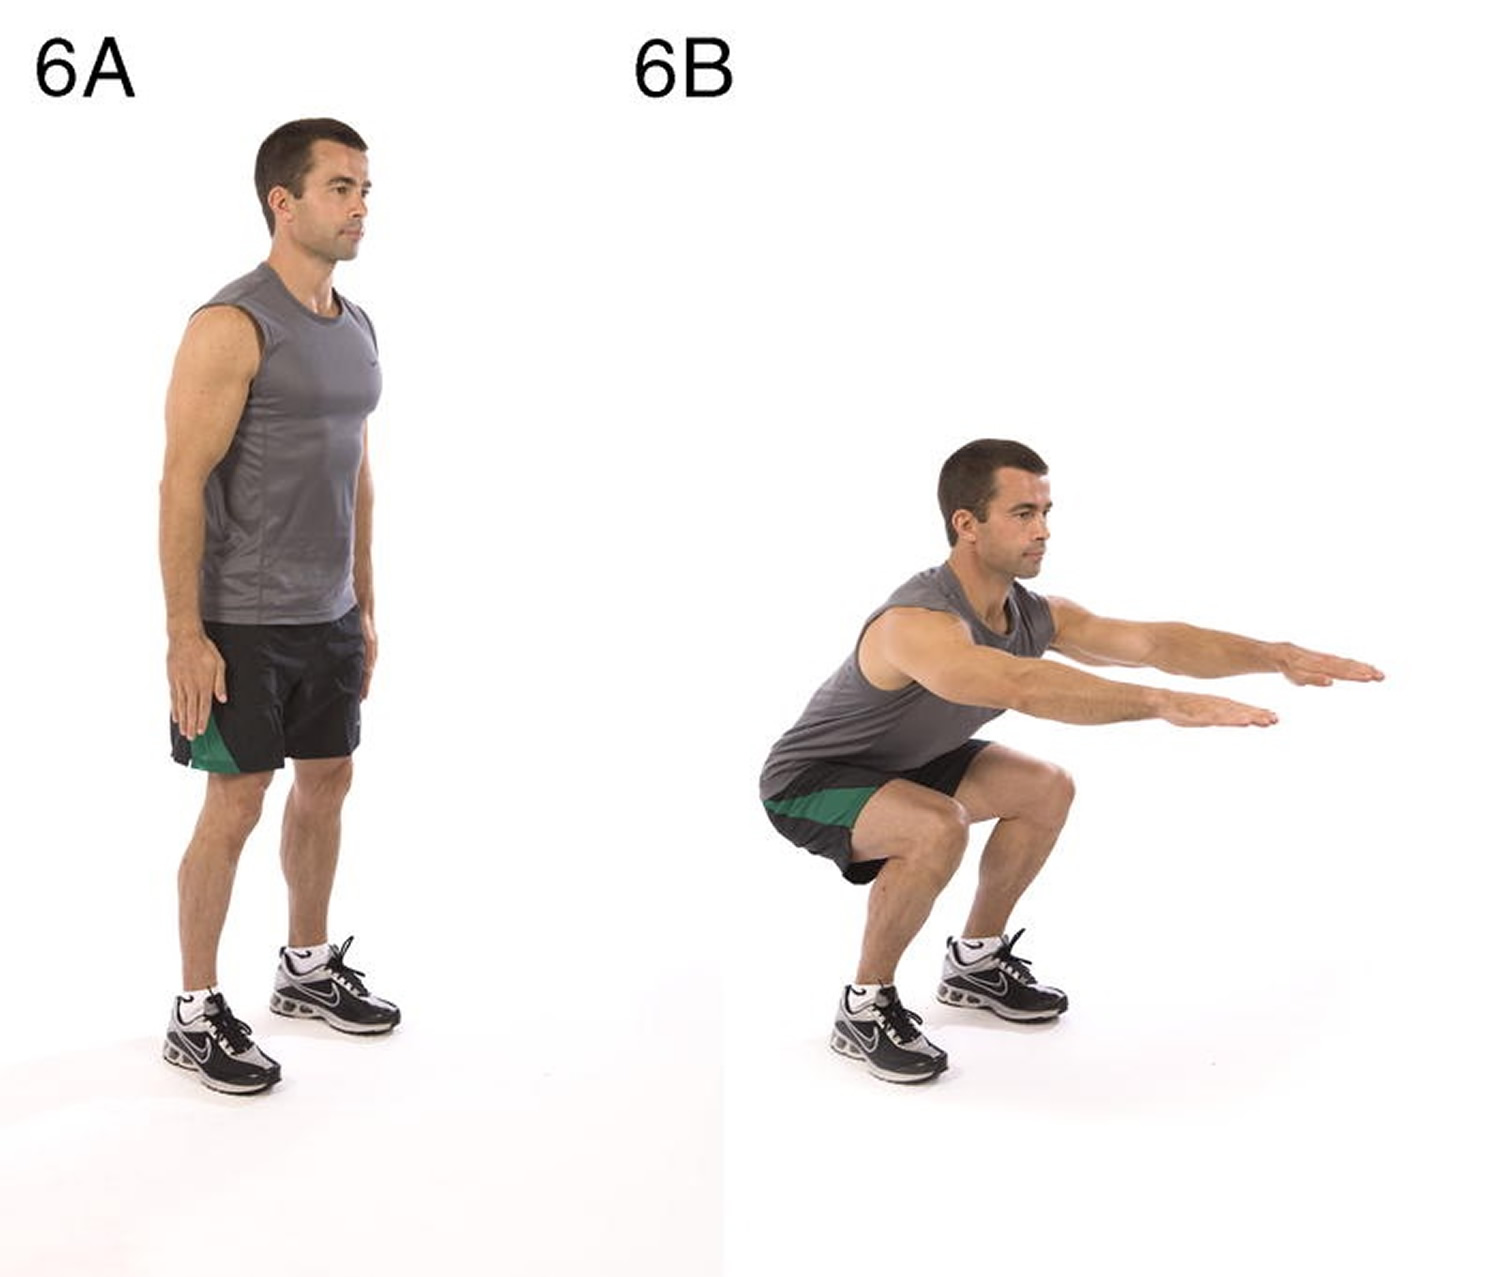 Squat Lower body